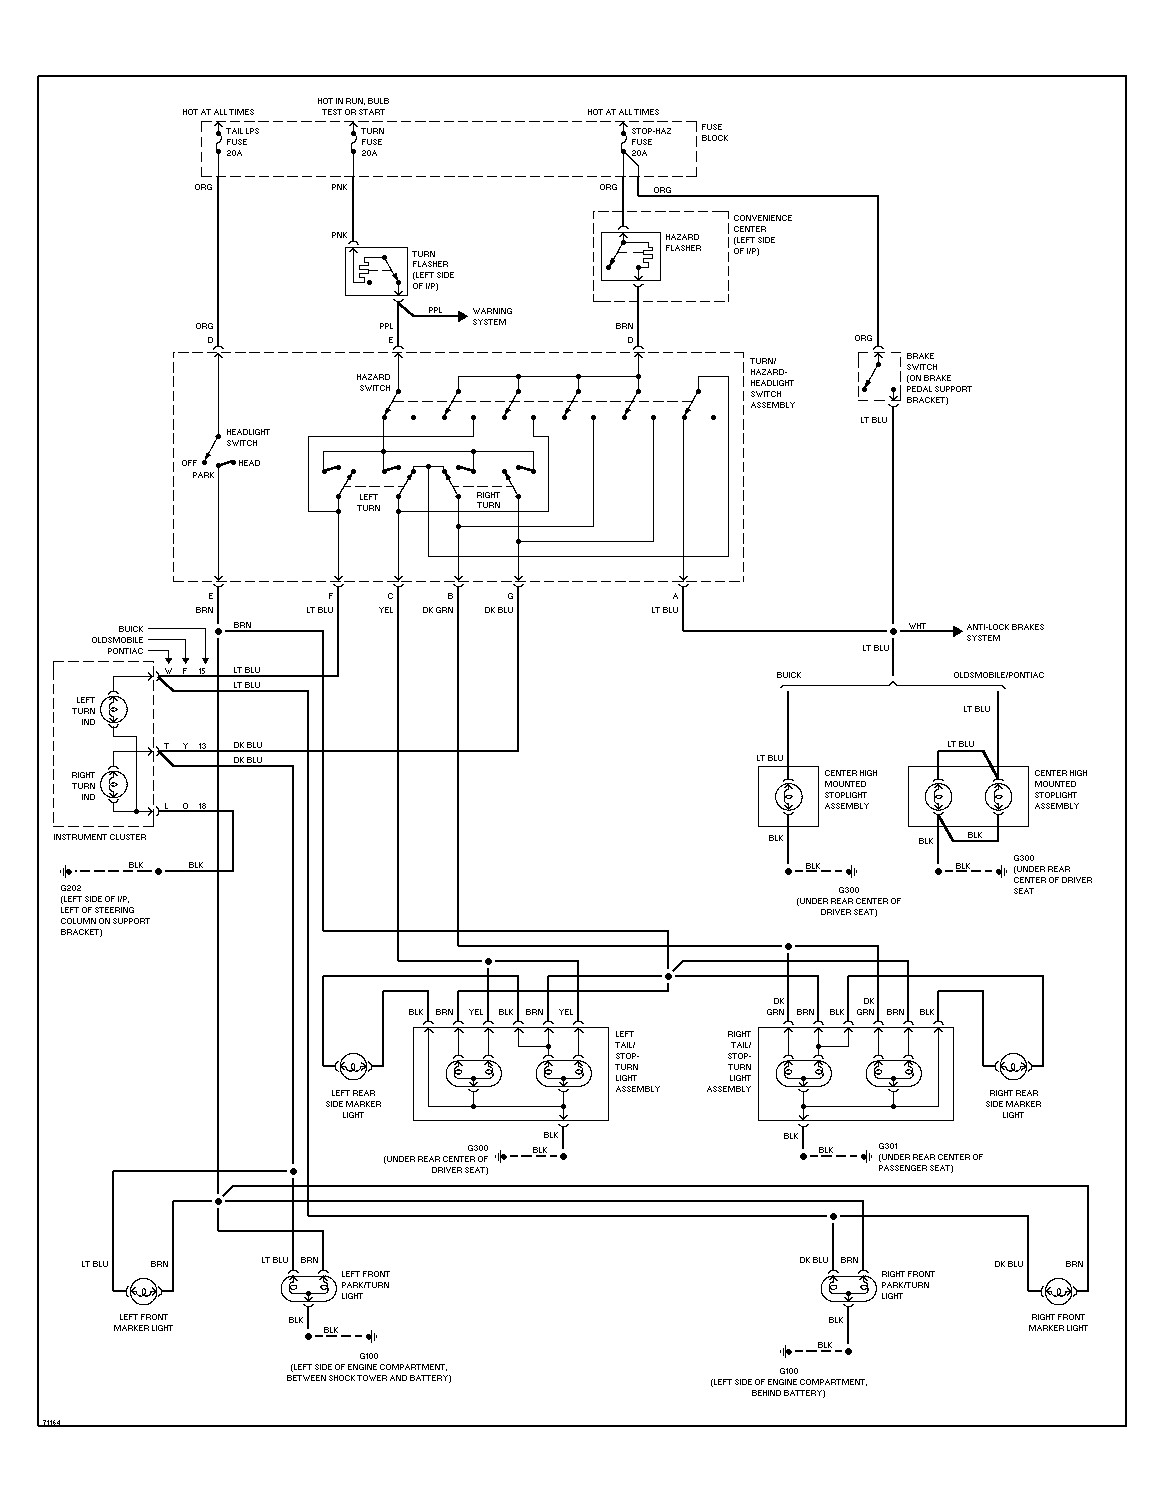 DIAGRAM] 2003 Pontiac Grand Am Radio Wiring Diagram FULL Version HD Quality Wiring  Diagram - IRREVOCABLETRUSTS.NIMESREPORTER.FRDiagram Database